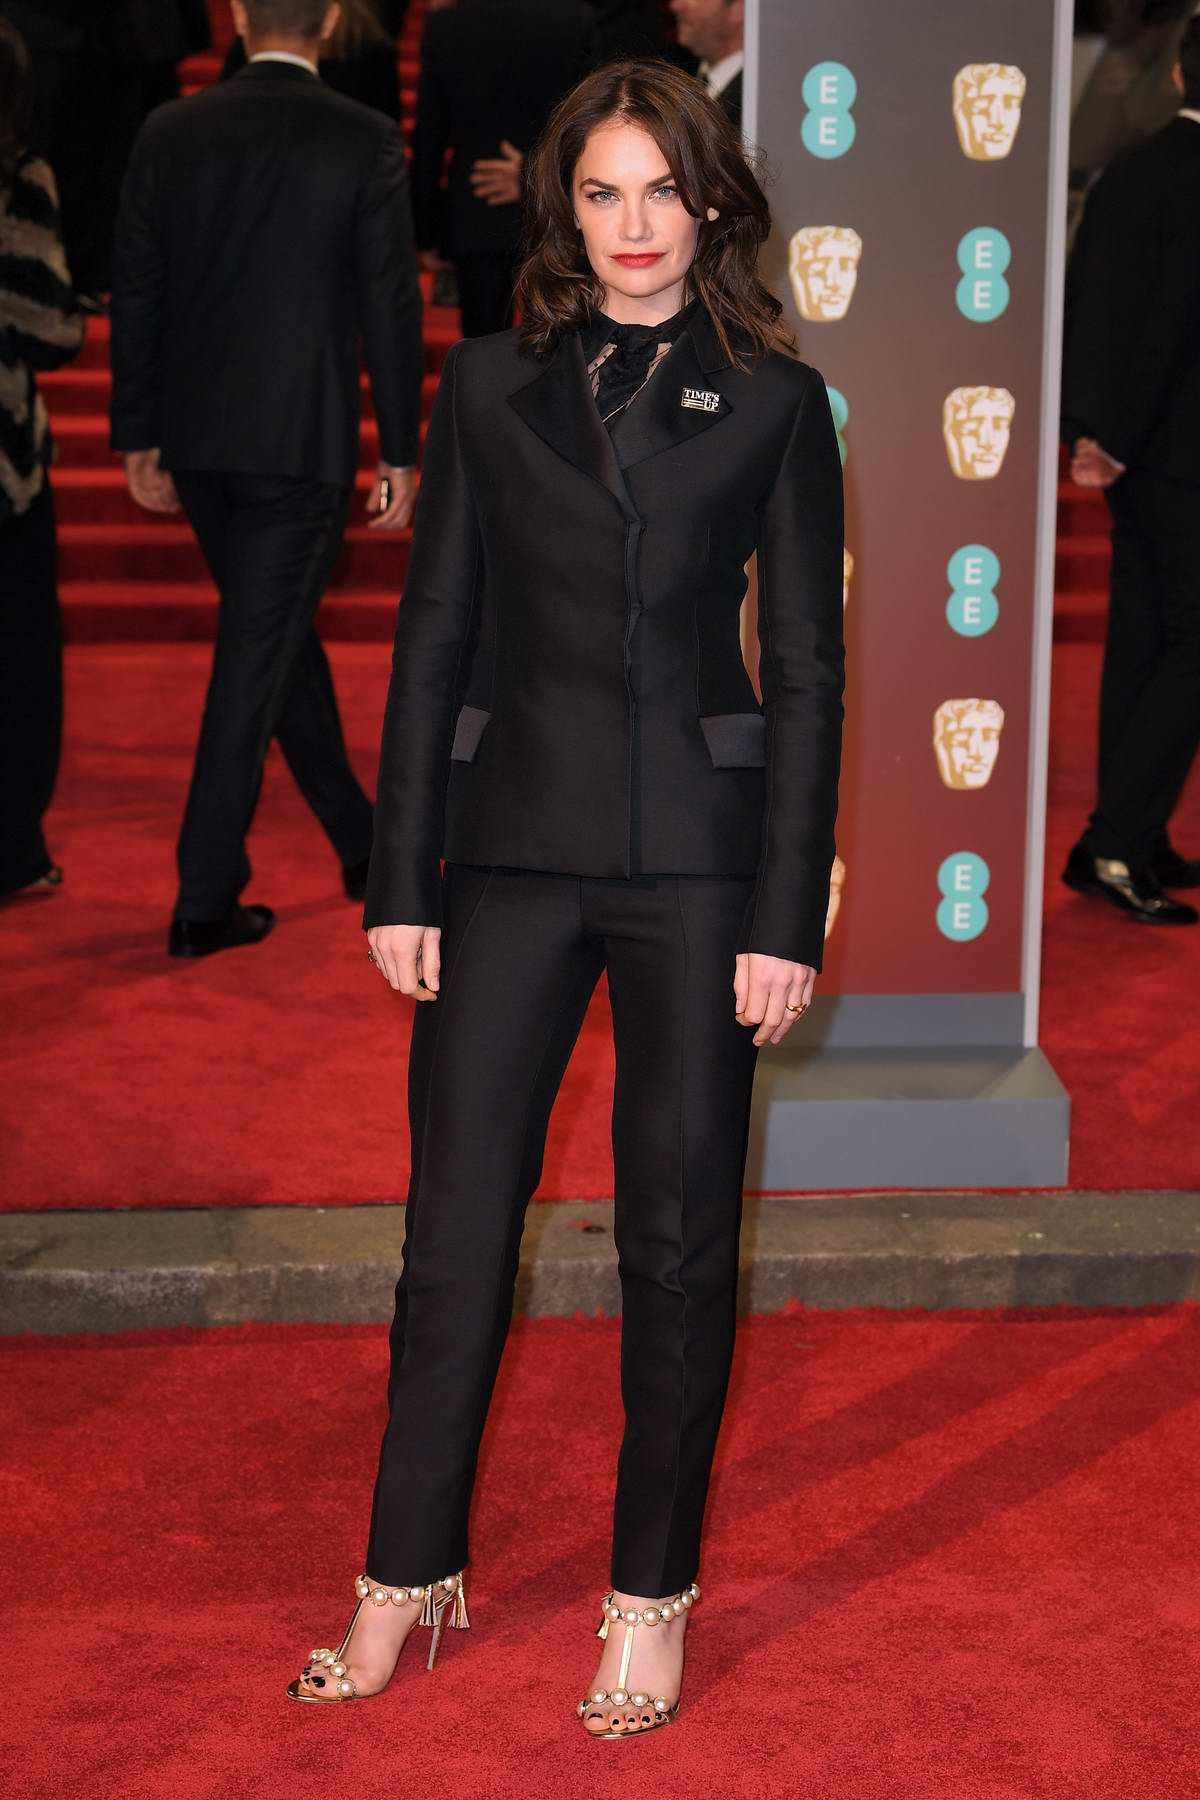 Ruth Wilson attends 71st British Academy Film Awards at Royal Albert Hall in London